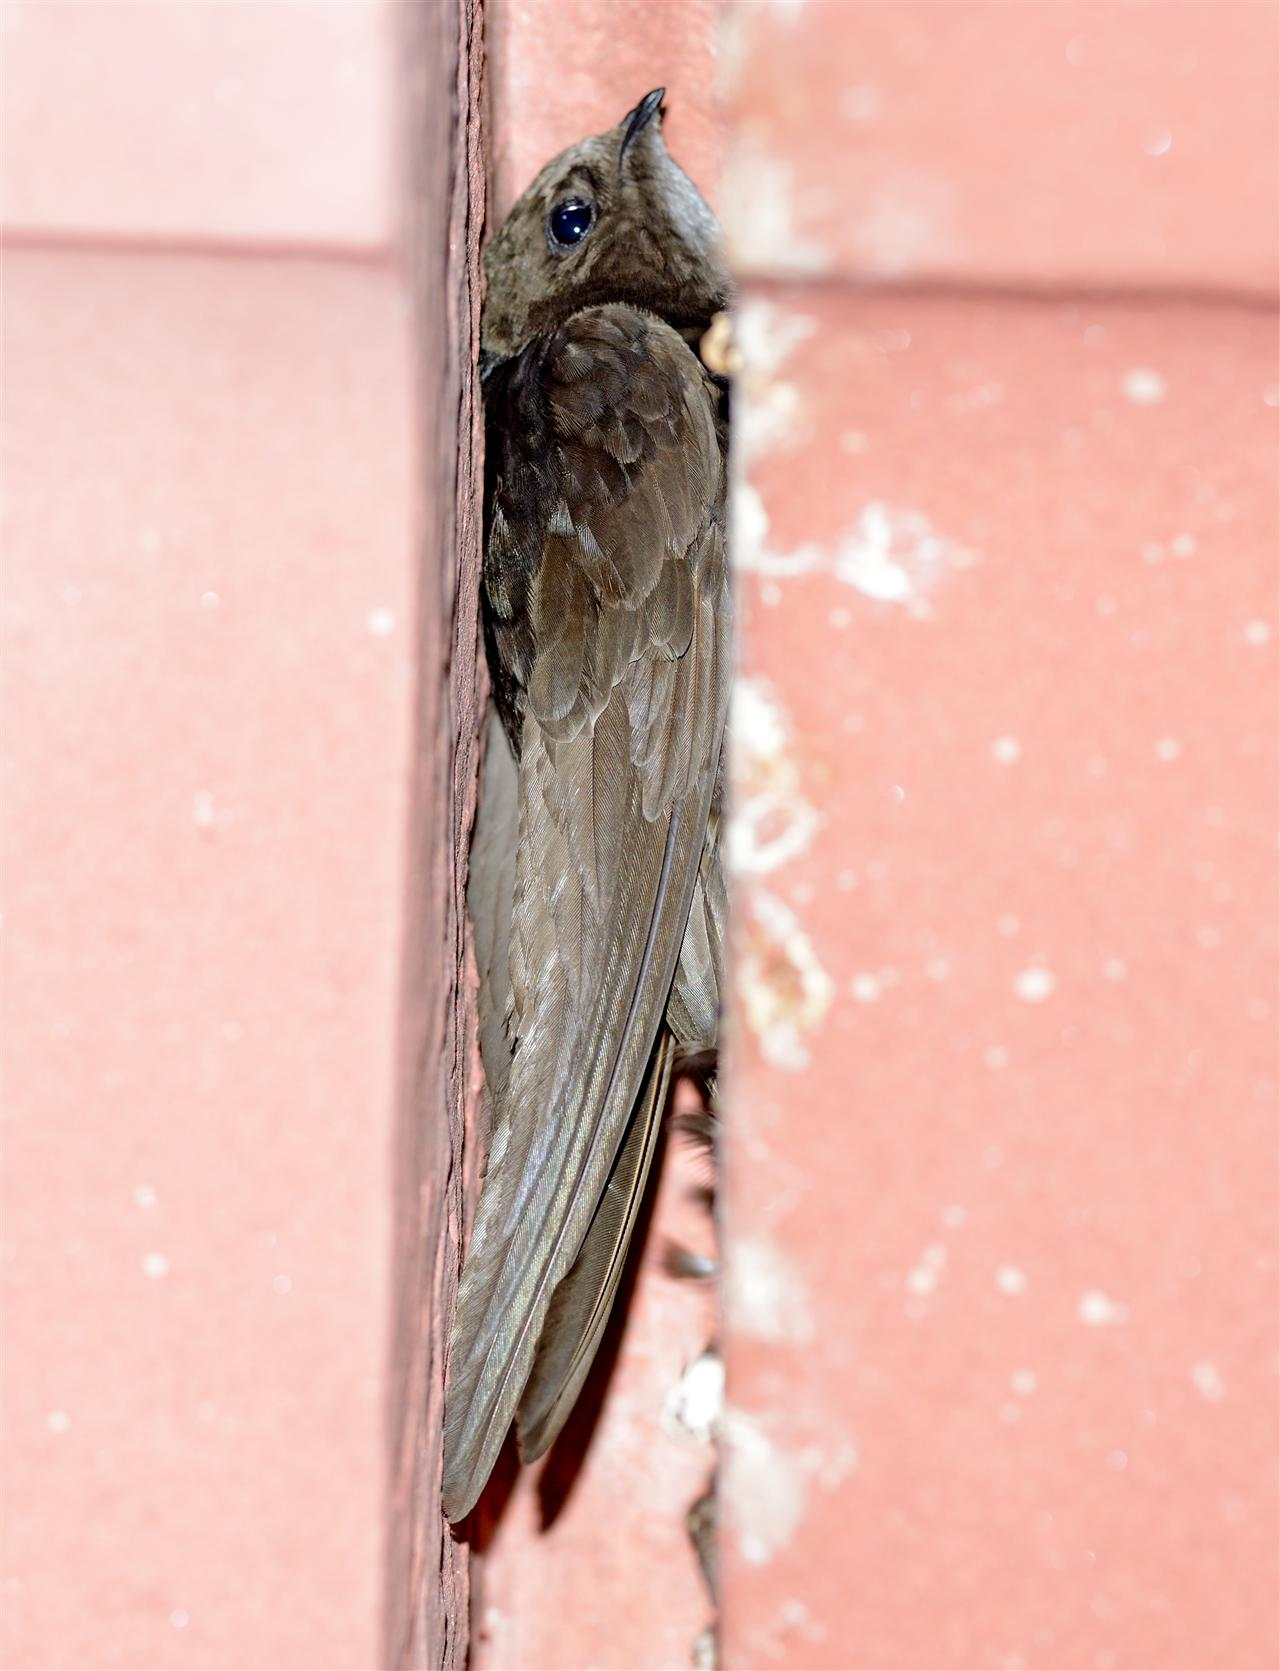 Hundreds of Dusky Crag-Martin have built nests in the southern entrance of the main building of the Rashtrapati Bhavan and have been residing there for decades.